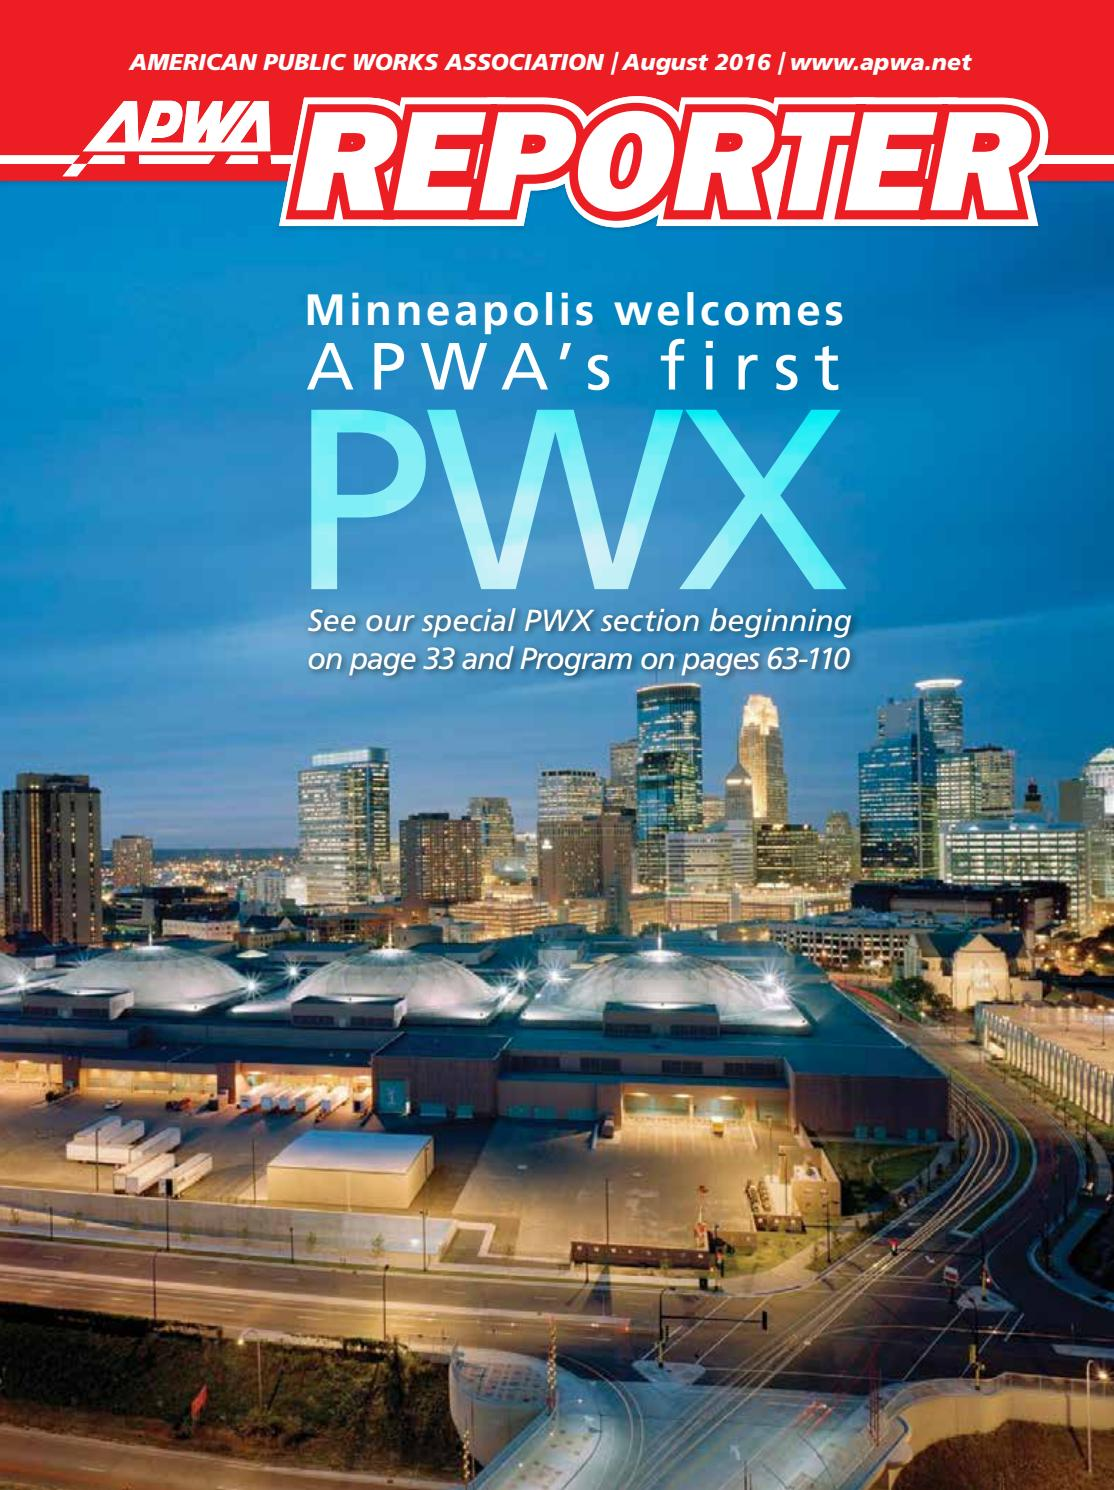 Apwa reporter august 2016 issue by american public works apwa reporter august 2016 issue by american public works association issuu kristyandbryce Images